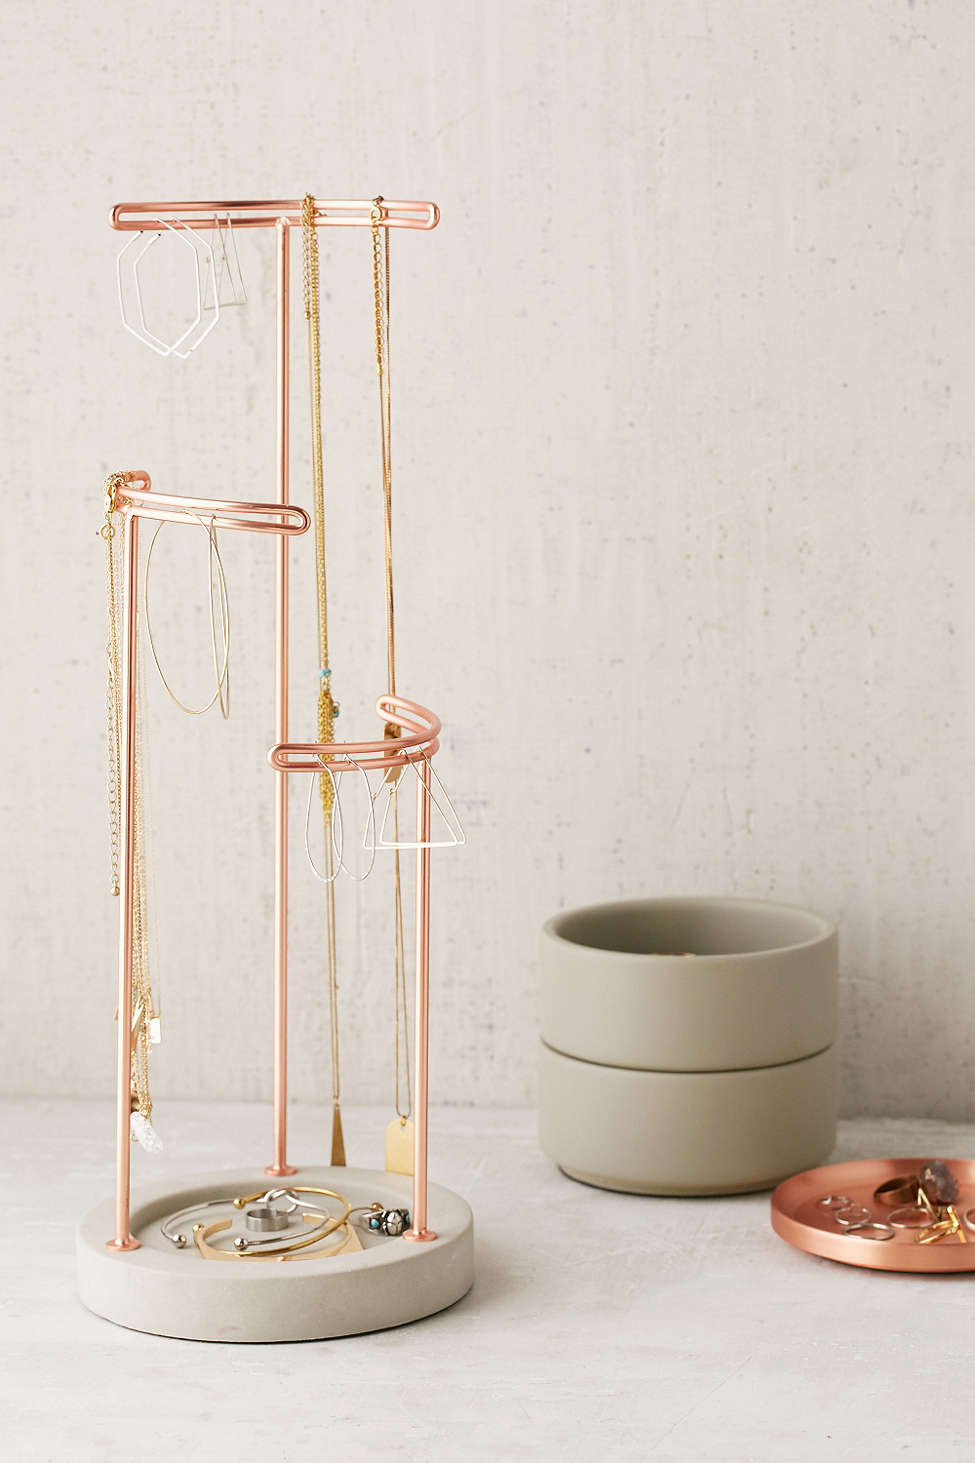 Concrete and metal jewelry stand from Urban Outfitters